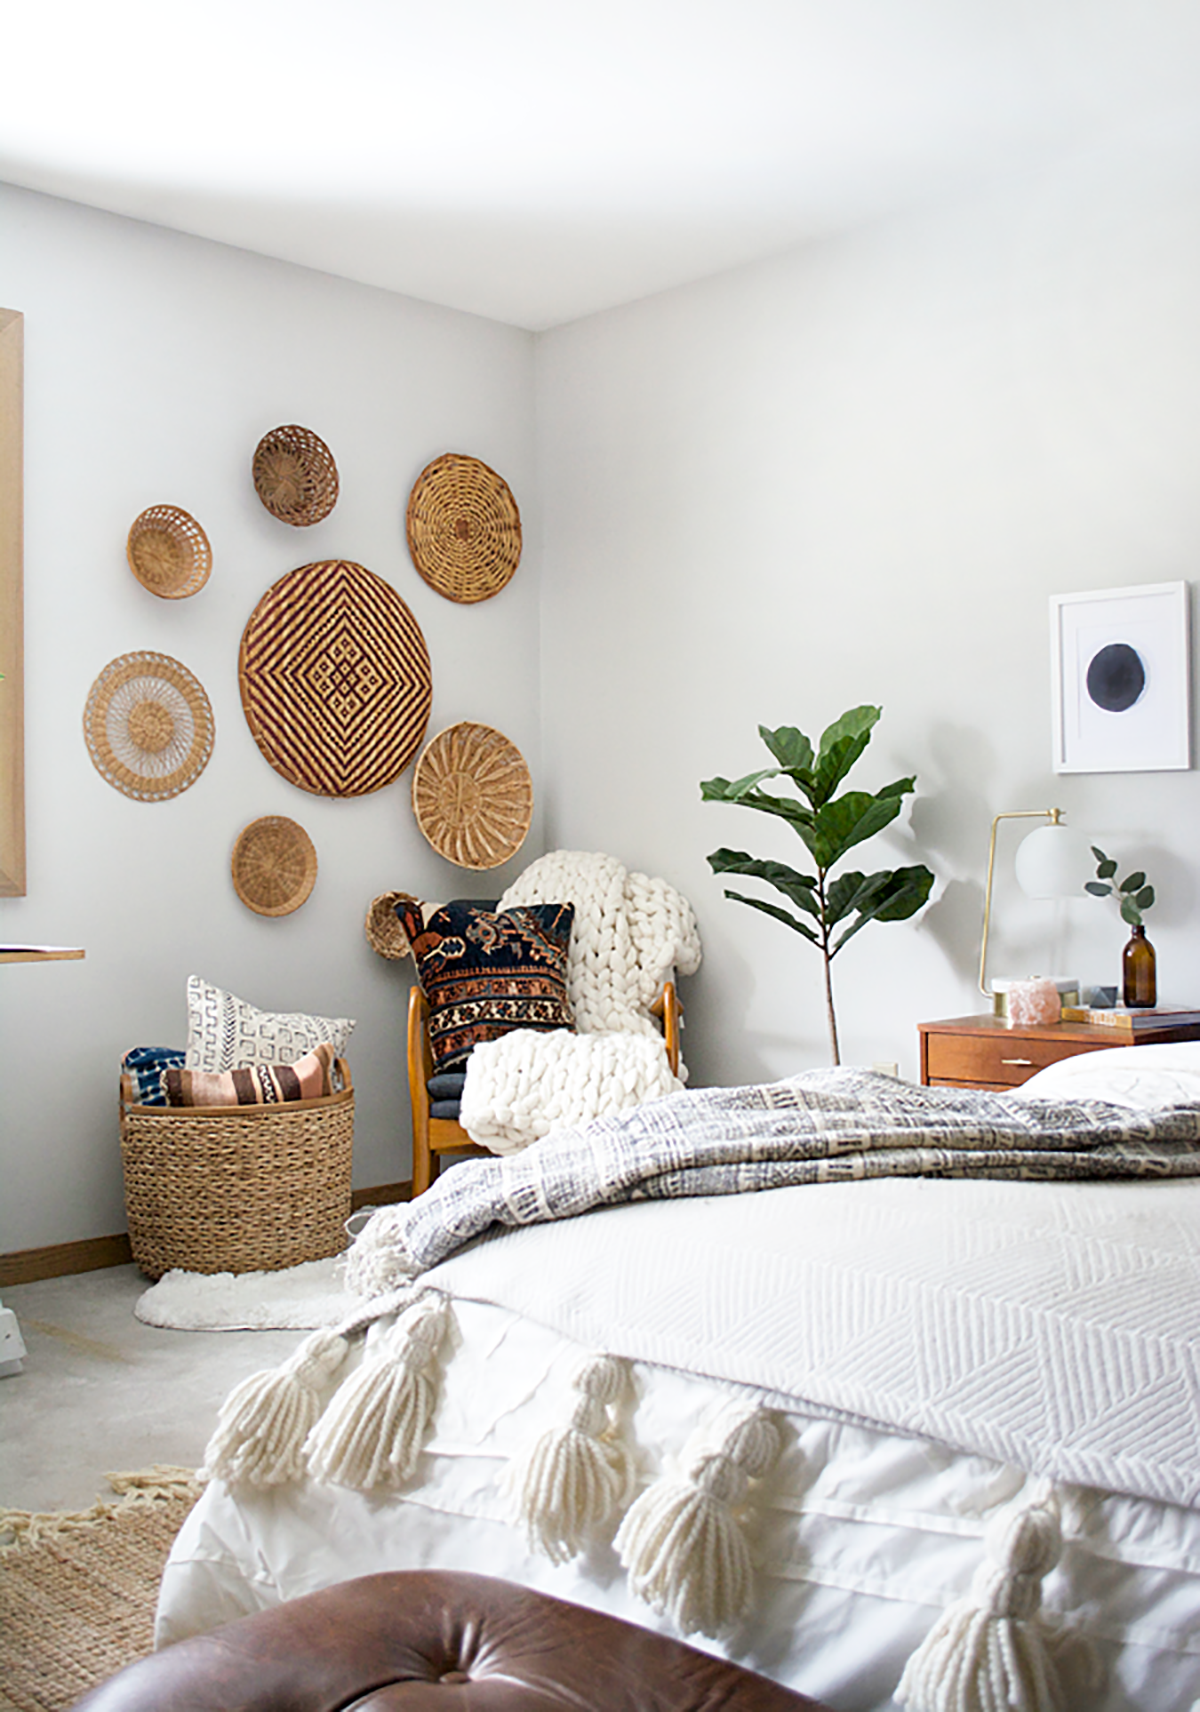 the-best-places-to-find-decorative-wall-baskets.png